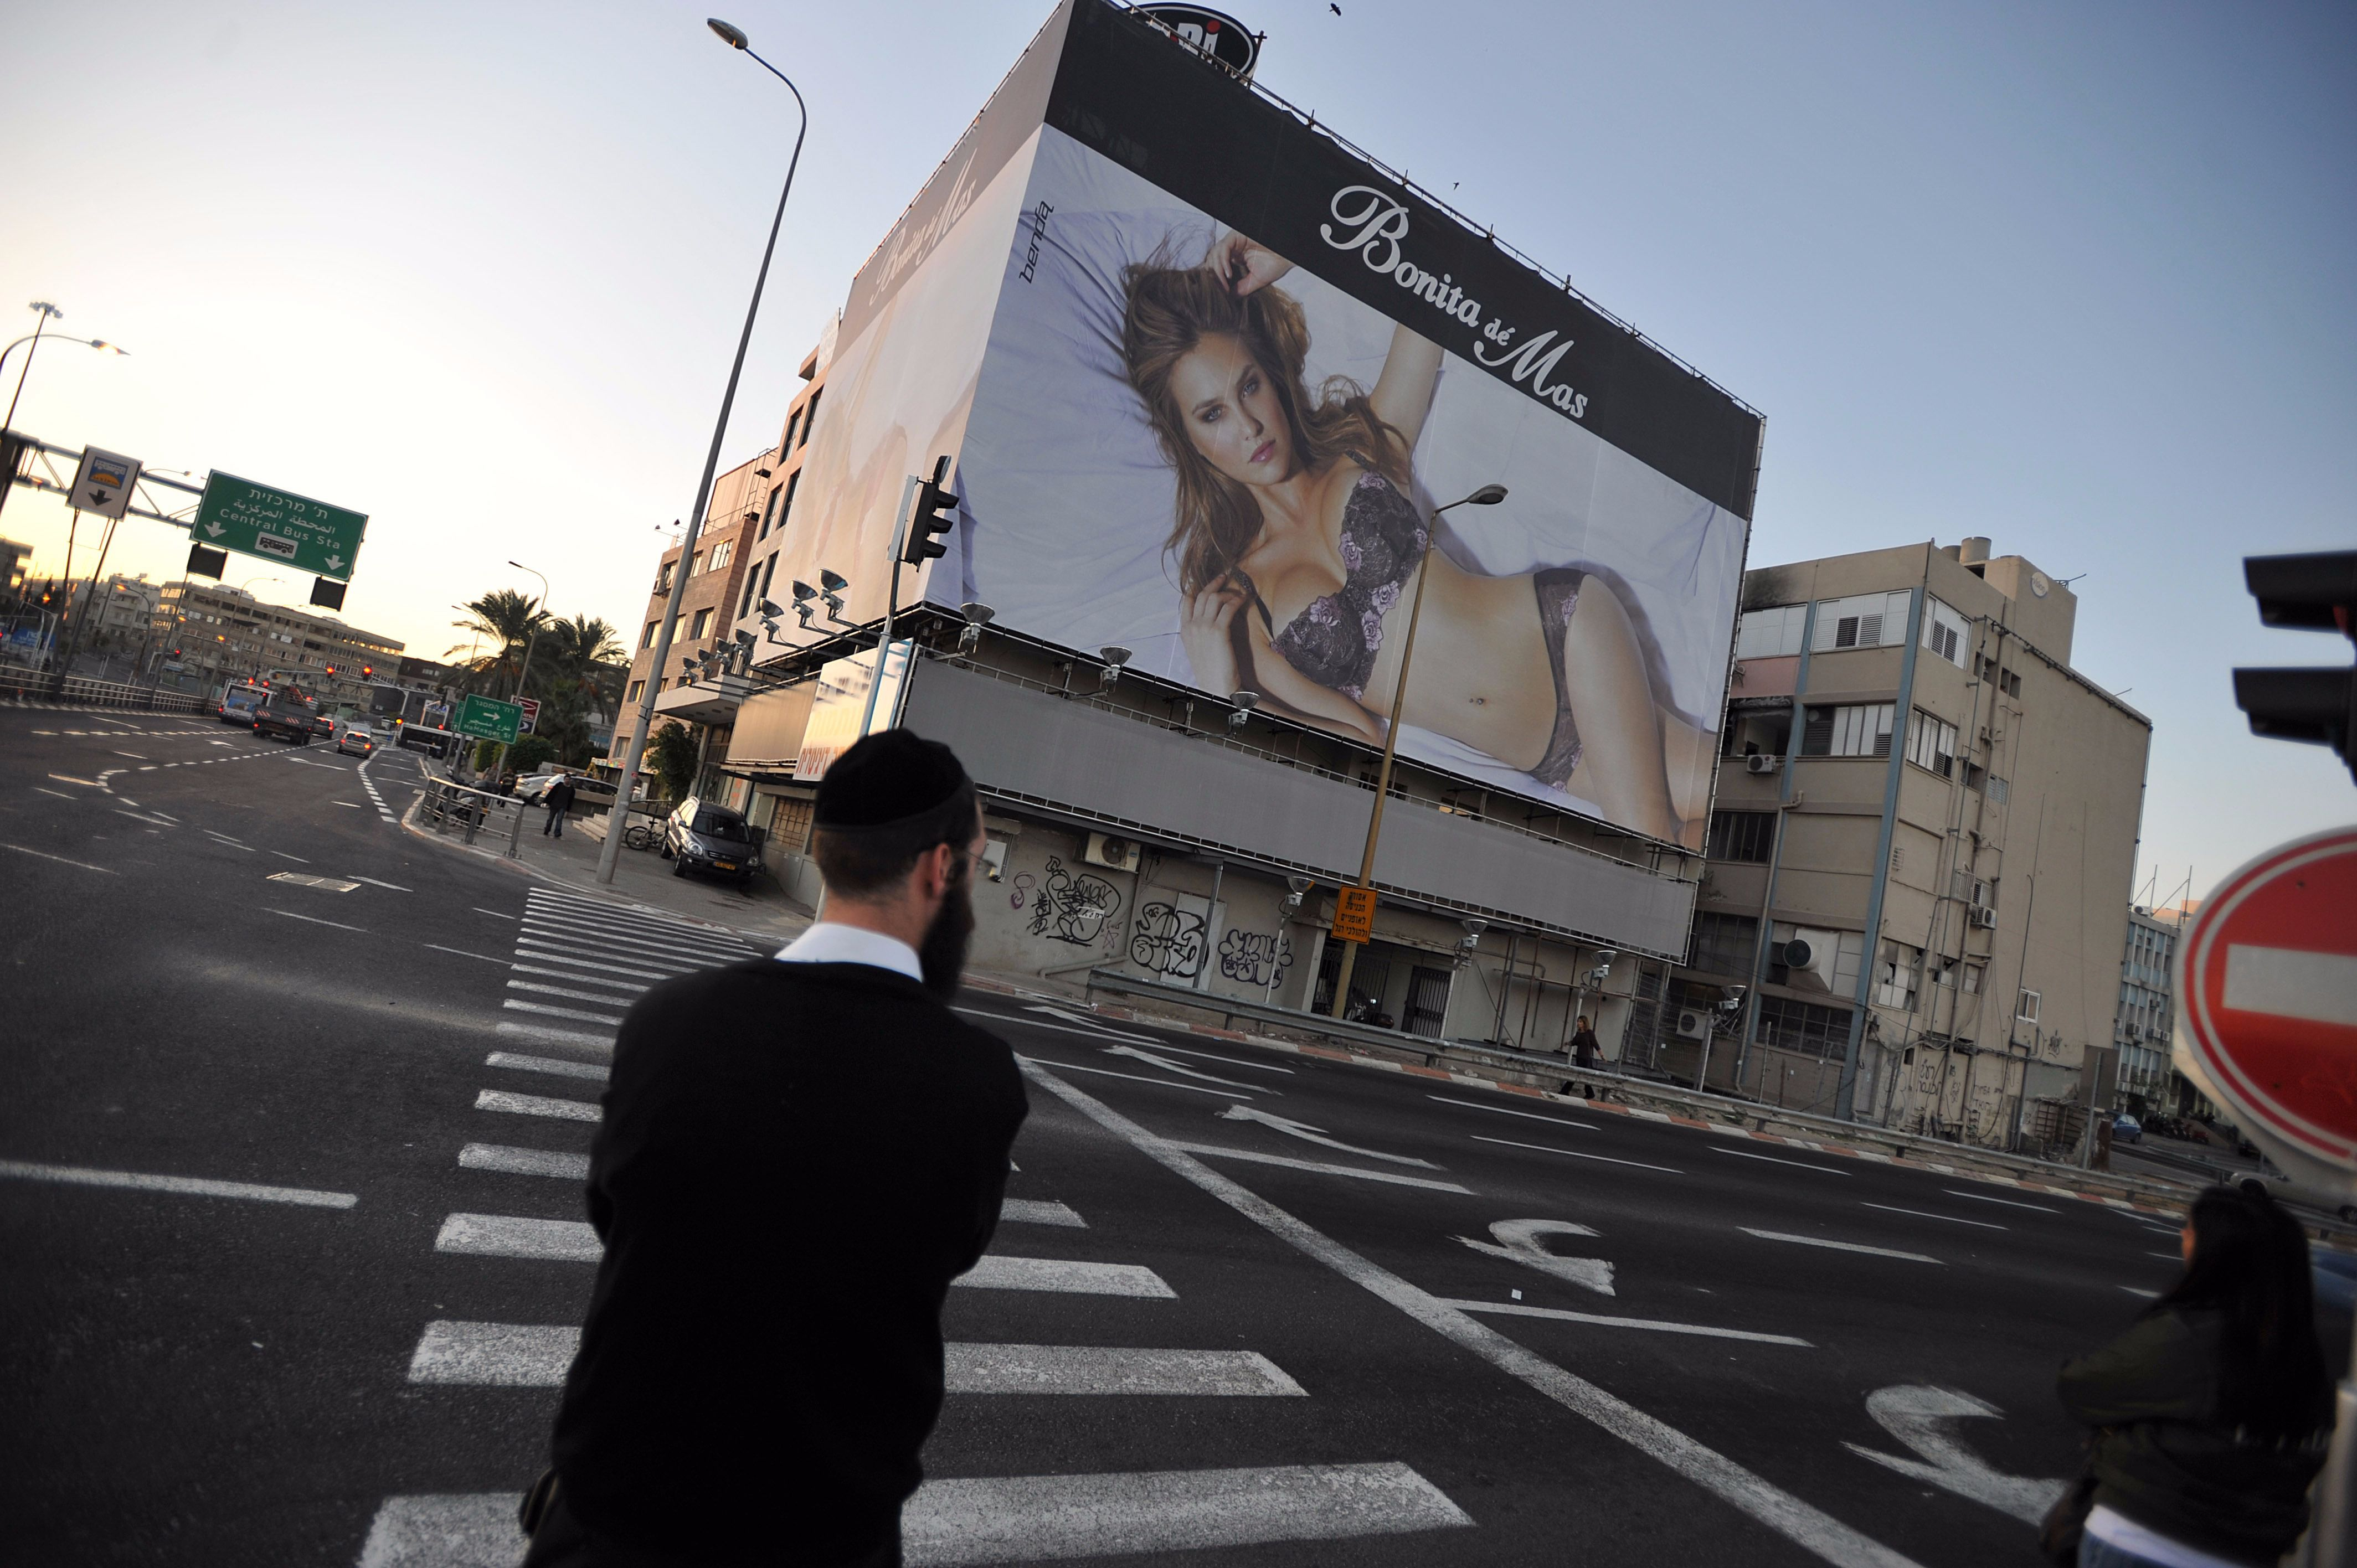 A Bar Refaeli billboard in Tel Aviv.